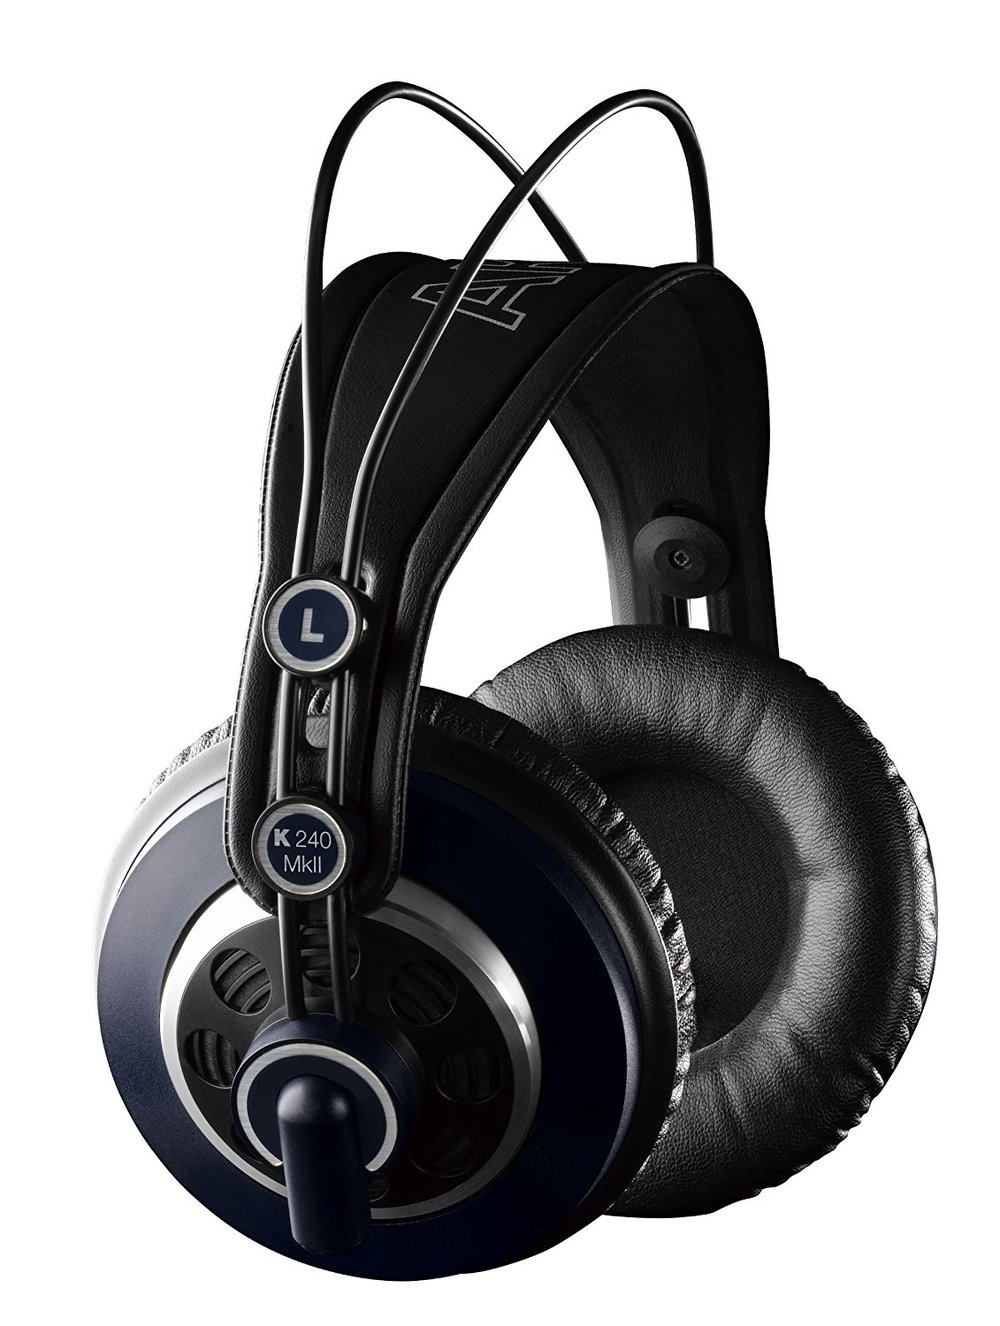 AKG K240 MKII Semi-Open Back Headphones